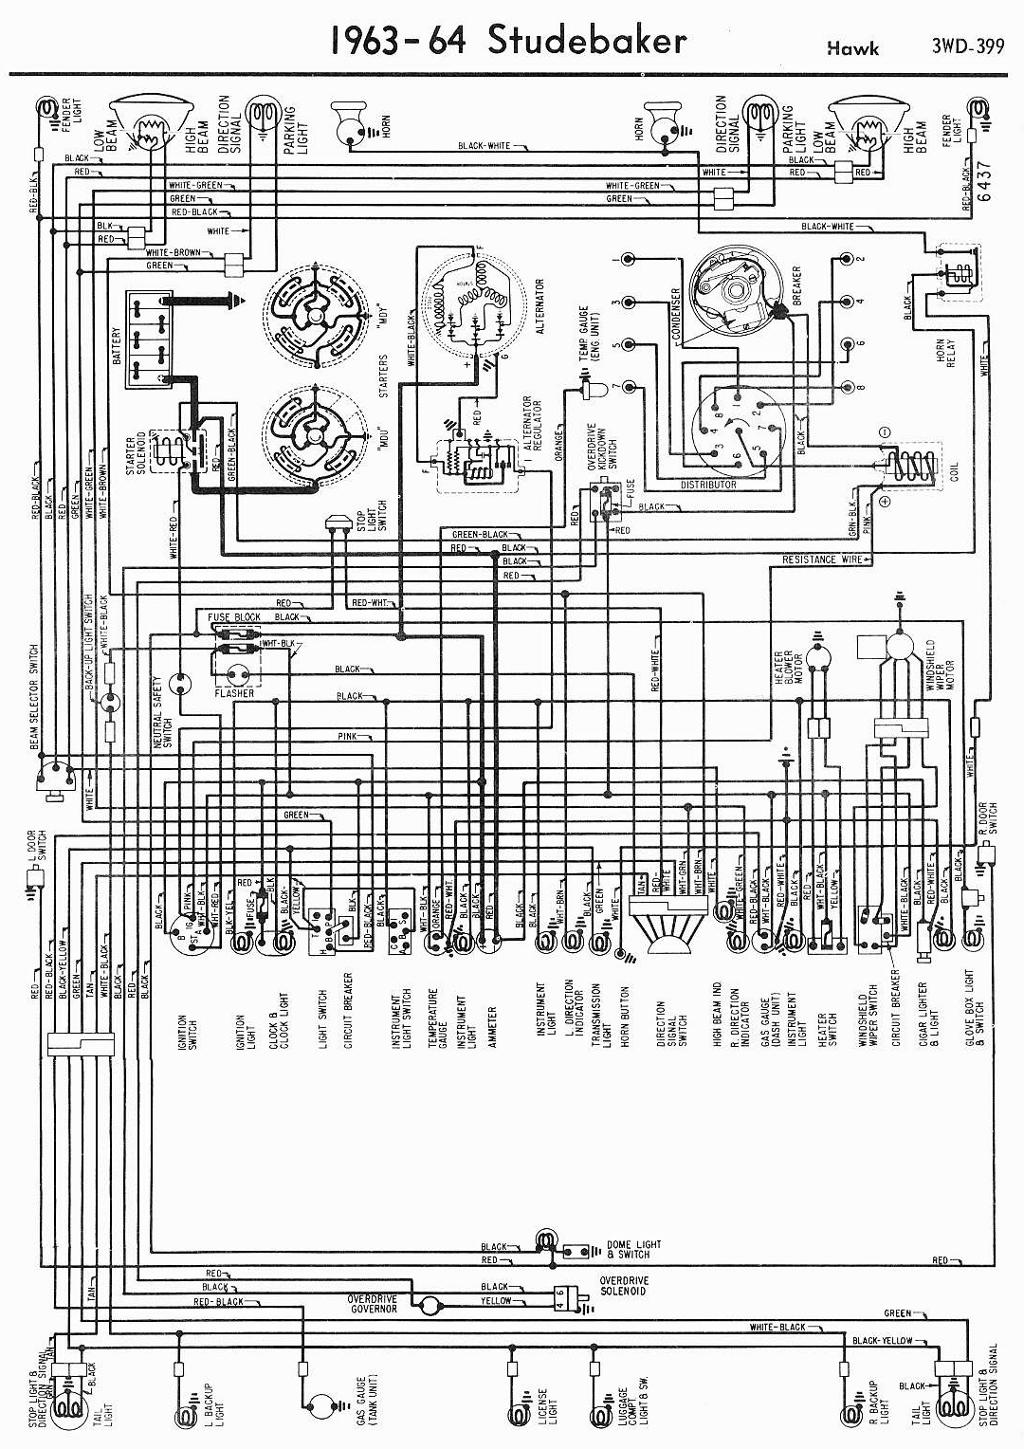 1963 avanti wiring diagram free vehicle wiring diagrams u2022 rh narfiyanstudio com 1953 Studebaker Commander Wiring-Diagram Mazda Generator Wiring Diagram